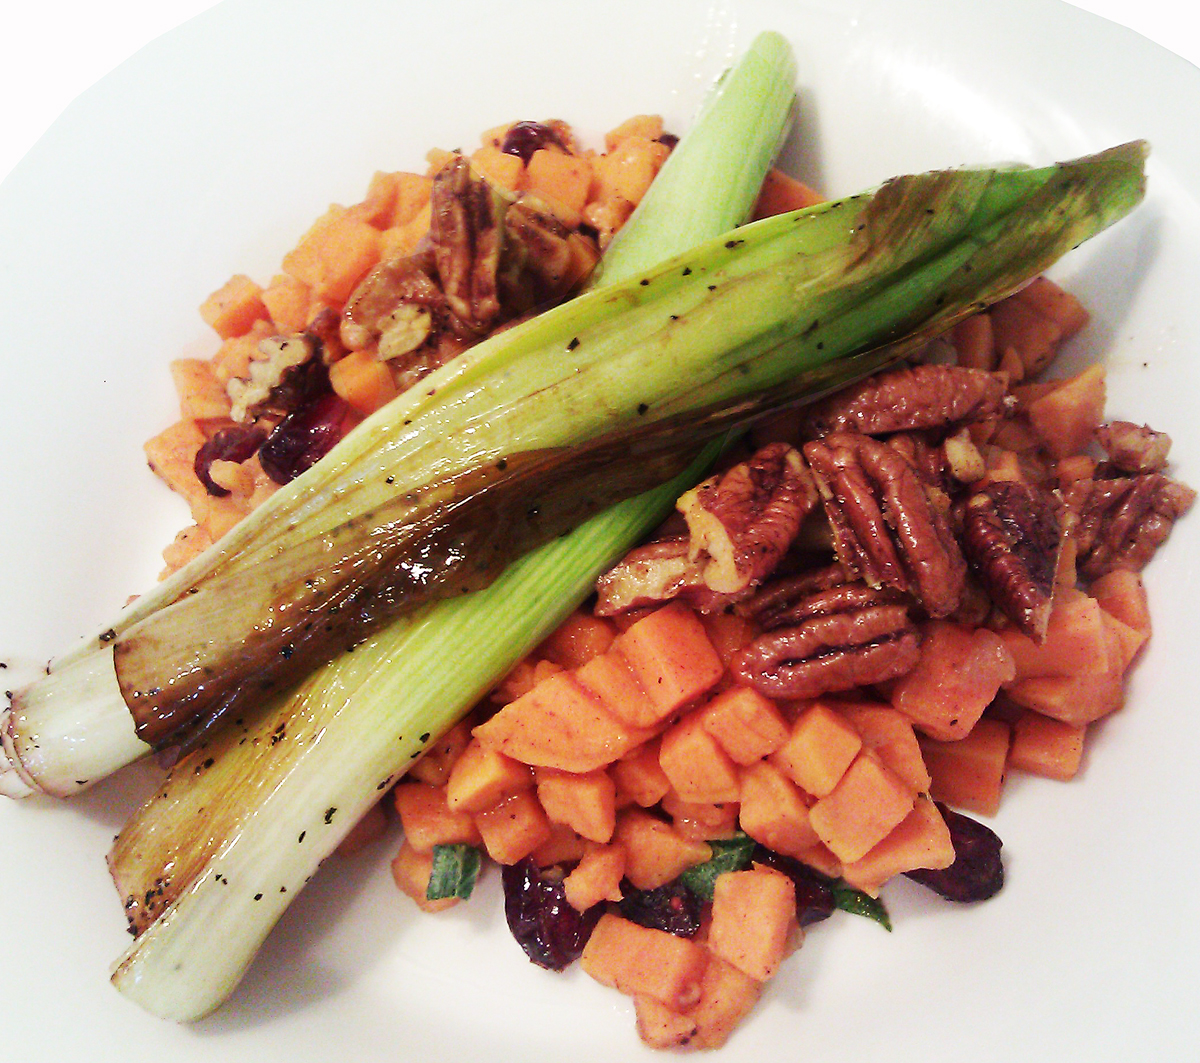 ... -Style Sweet Potato, Spicy Pecans, Cranberries and Braised Leeks